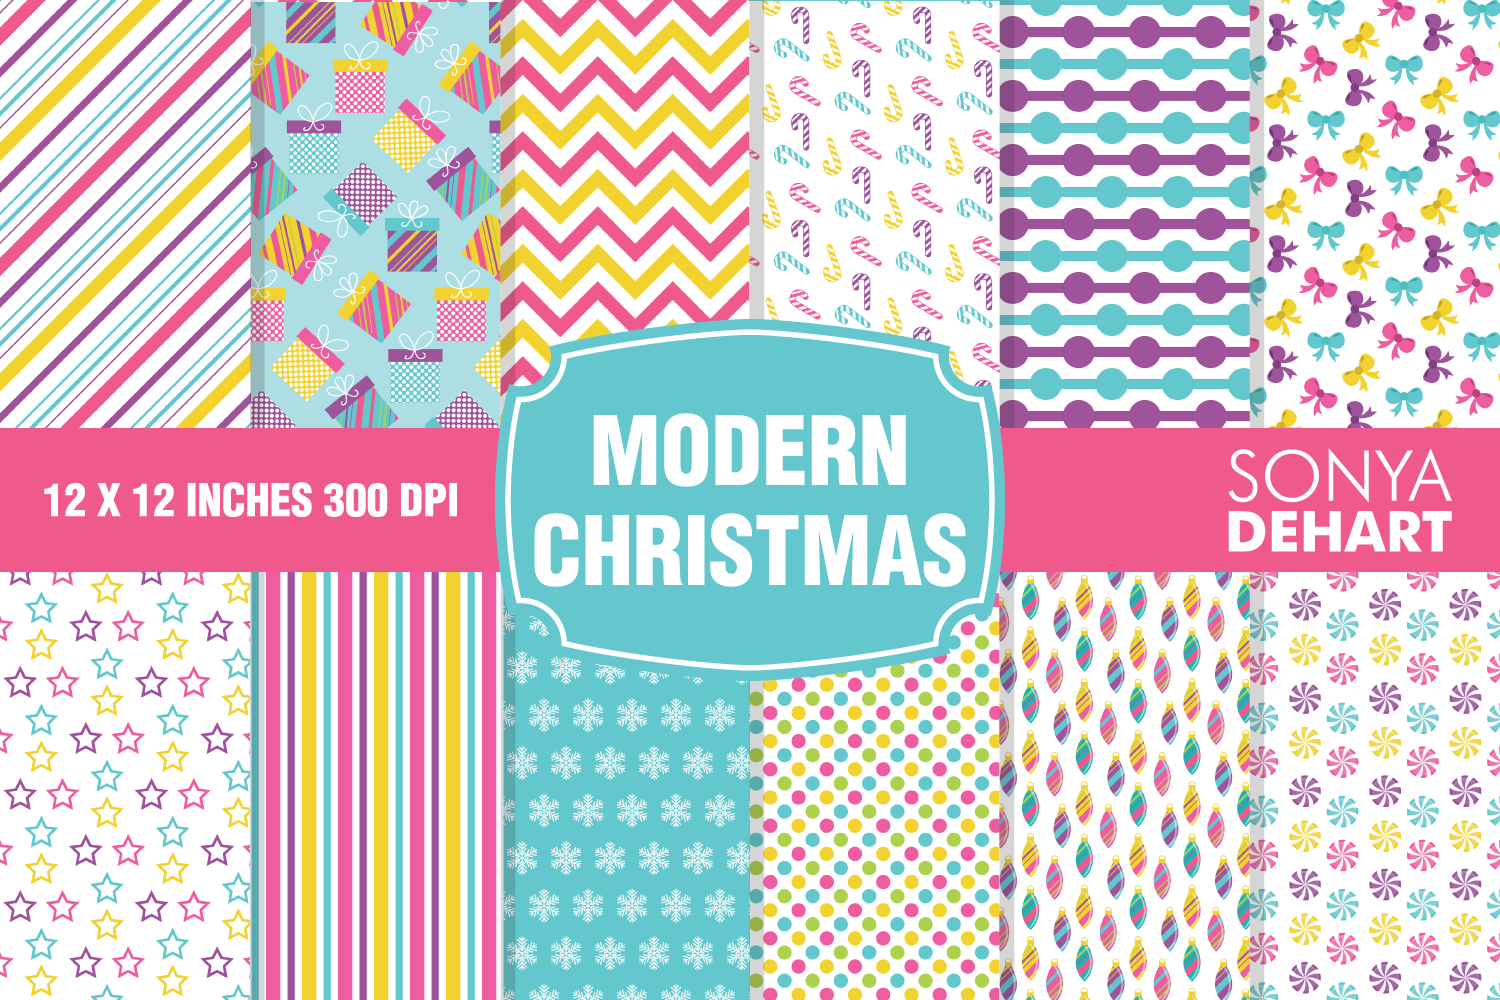 Modern Christmas Digital Paper Pattern Pack example image 1